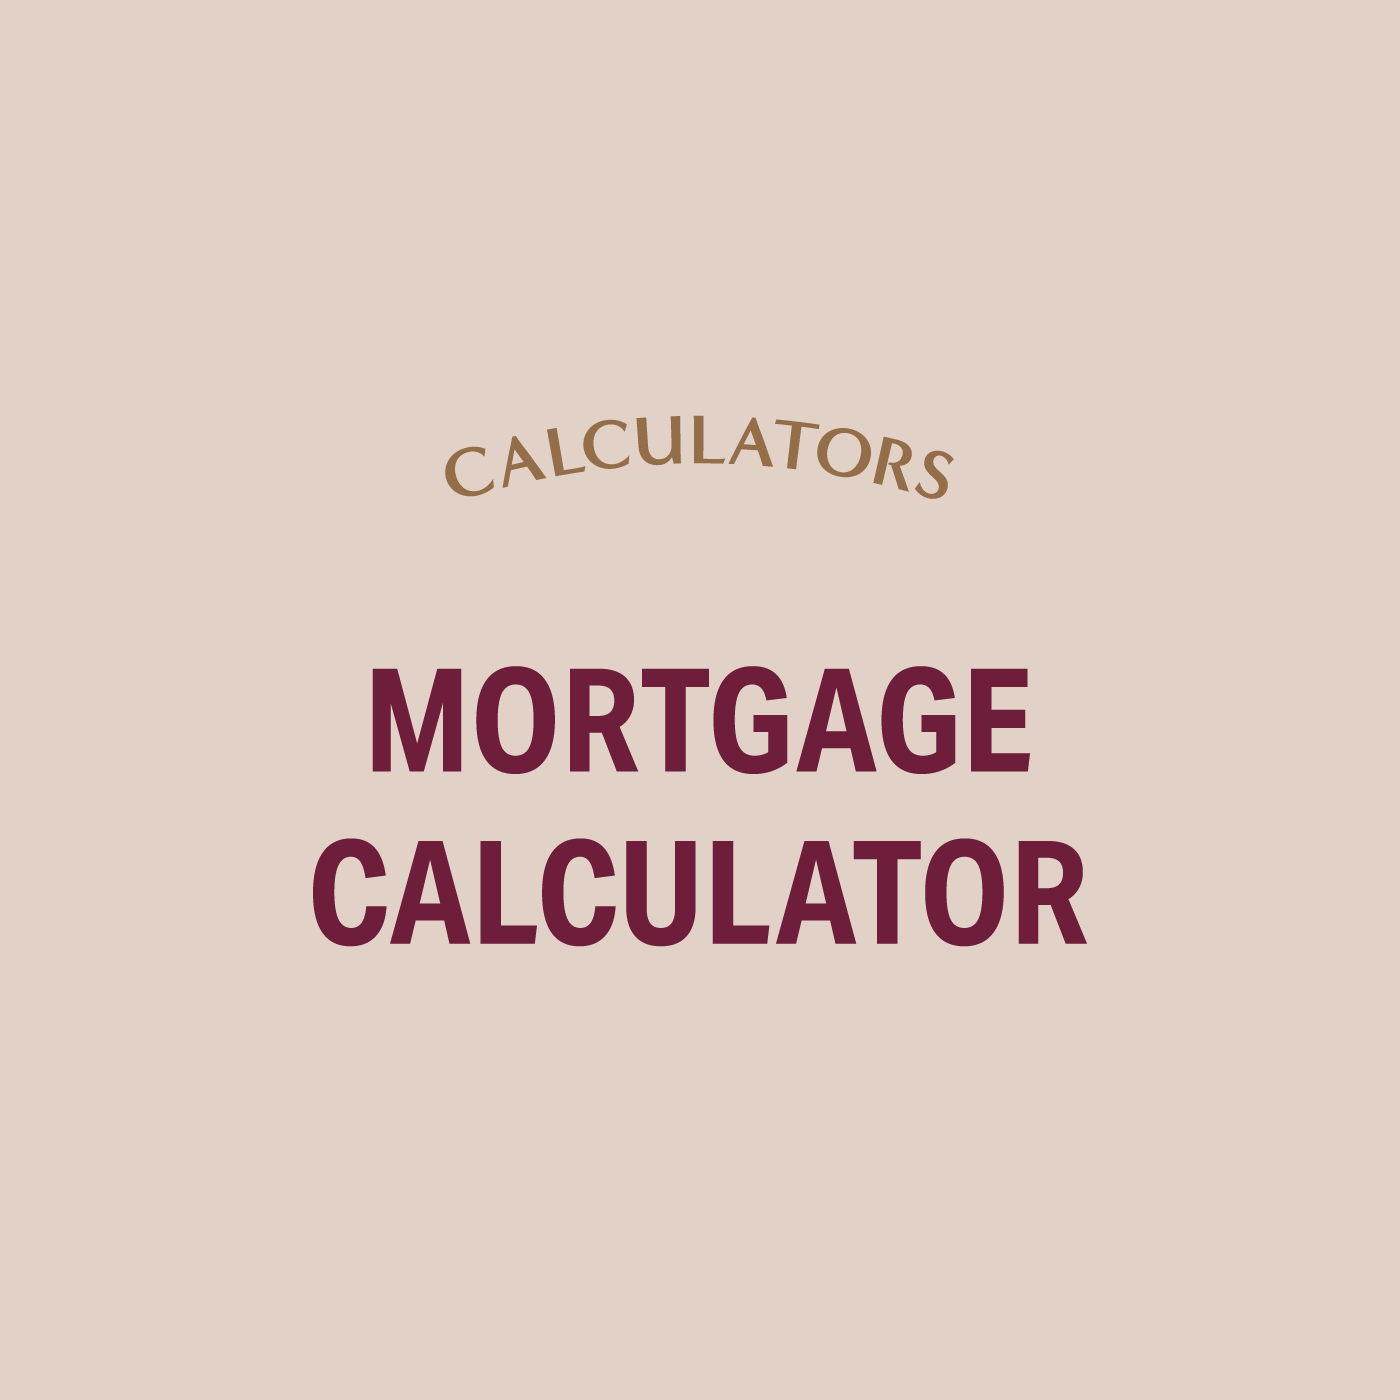 - Use this mortgage calculator to estimate your mortgage payment, taxes and insurance by entering the estimated home price, down payment, and other details.